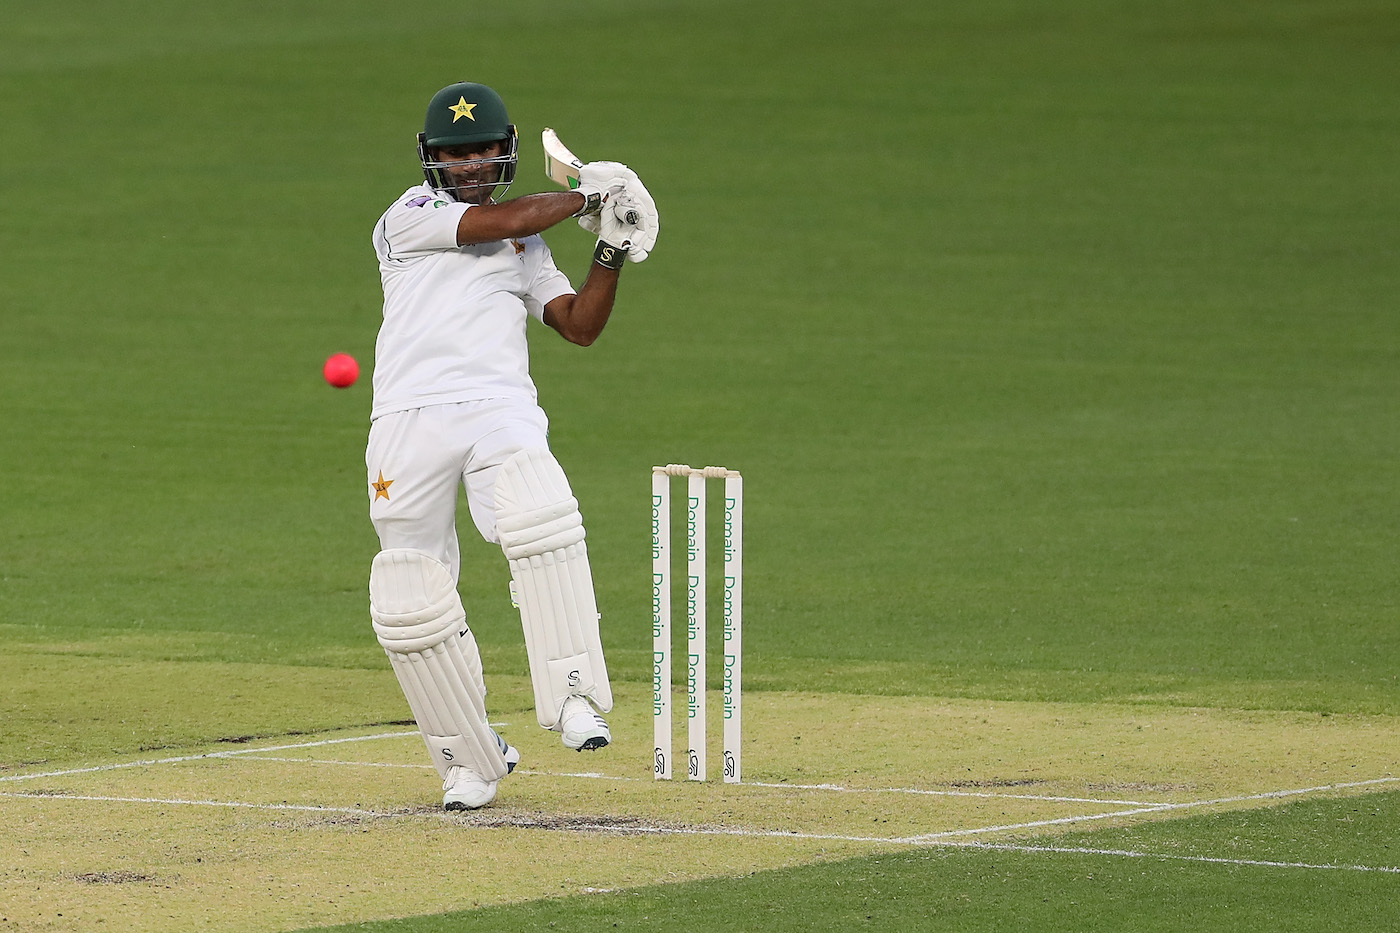 Practice match between Pakistan [386/7] and Cricket Australia XI [246/7] ends in a draw